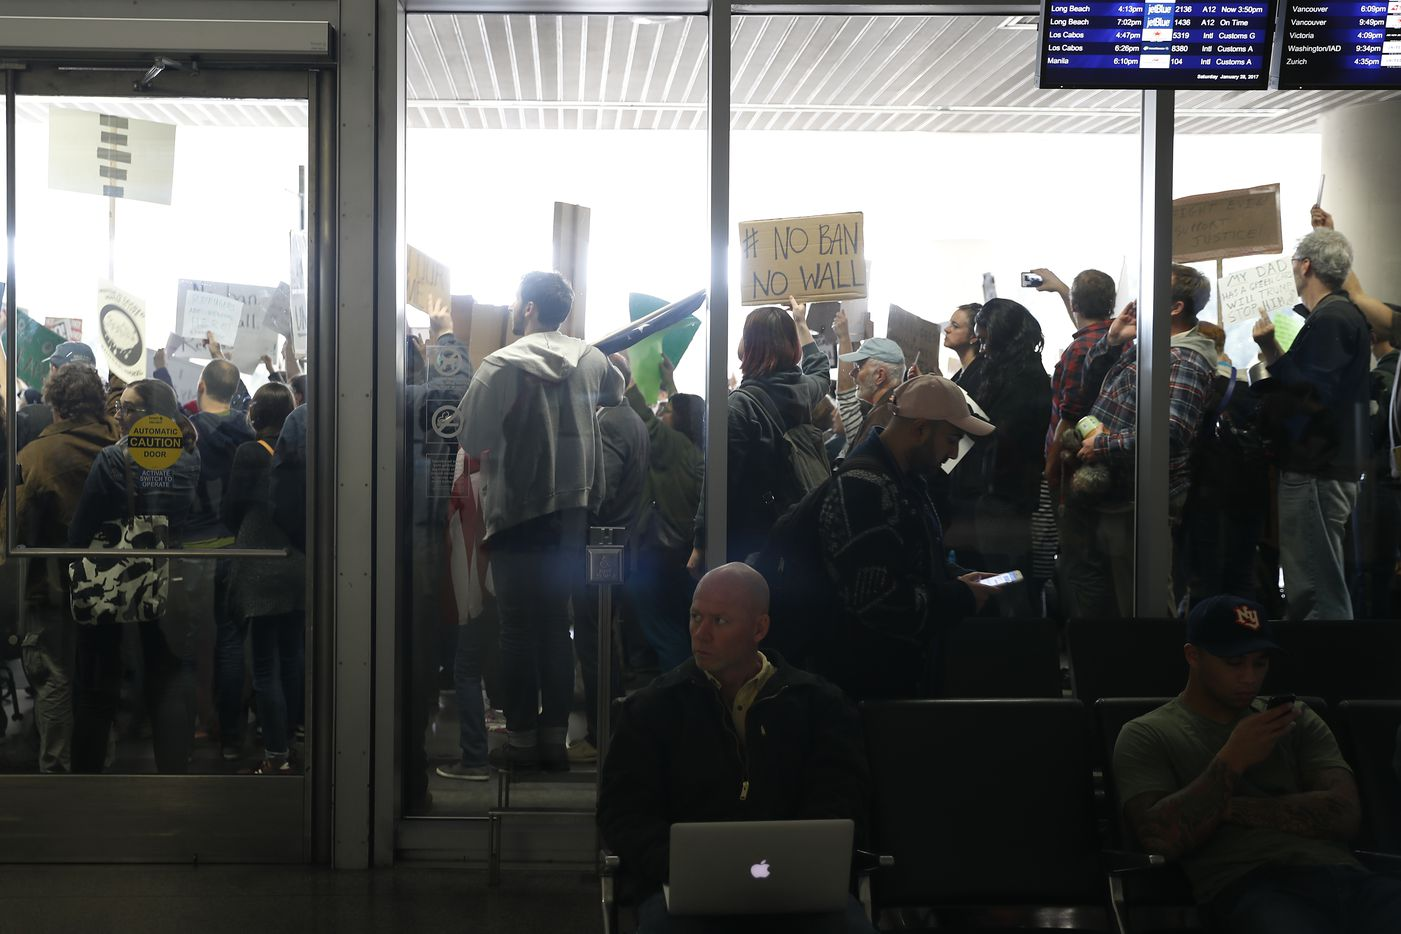 People at the international arrival terminal as demonstrators hold signs against a ban on Muslim immigration at San Francisco International Airport on January 28, 2017 in San Francisco, California.